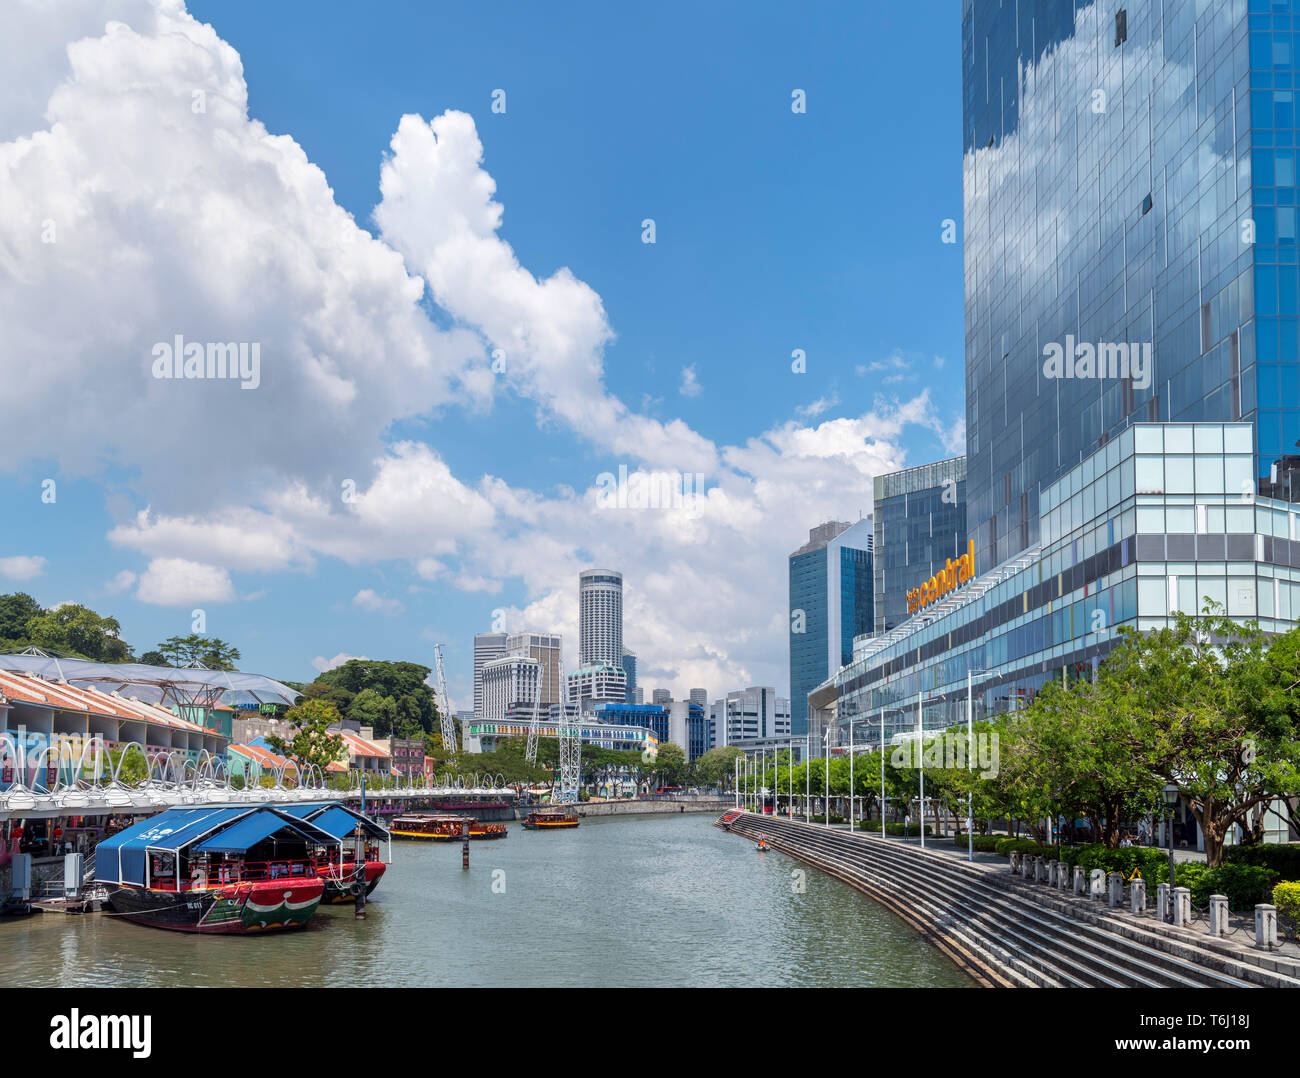 Clarke Quay and the Singapore River from Read Bridge, Singapore City, Singapore - Stock Image